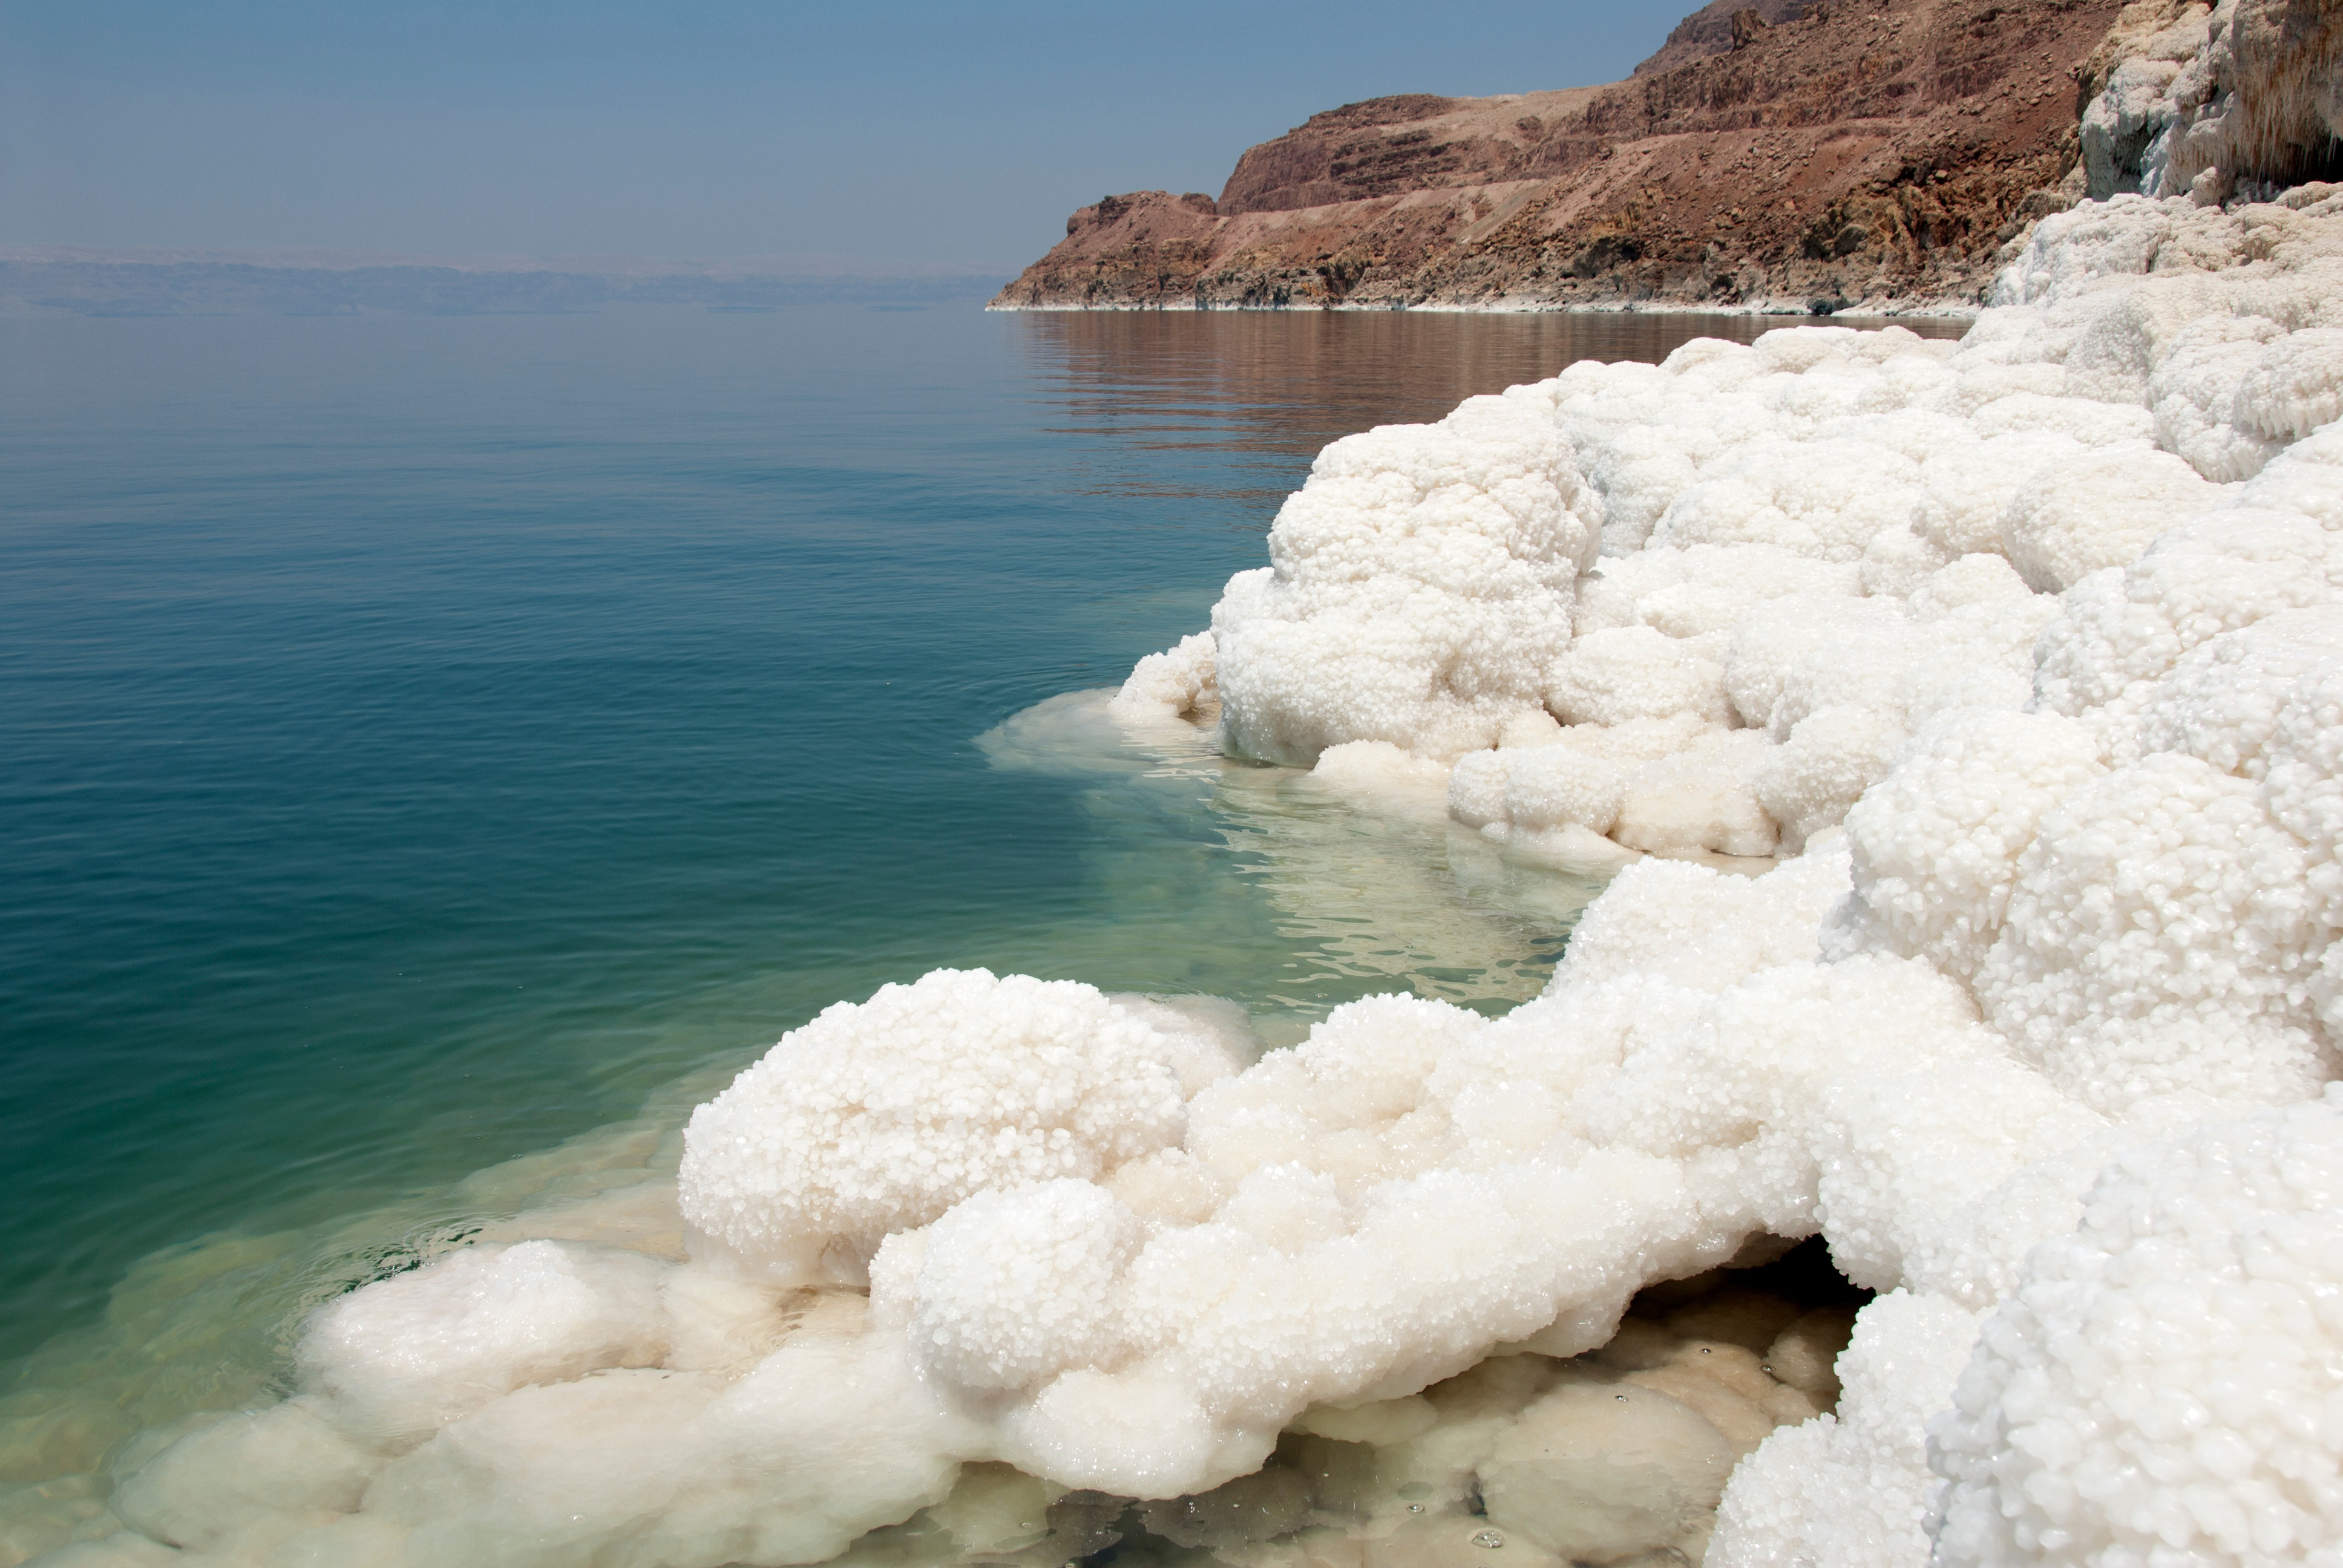 Salted water in the Dead Sea with salt crystals. (iStock Photo)